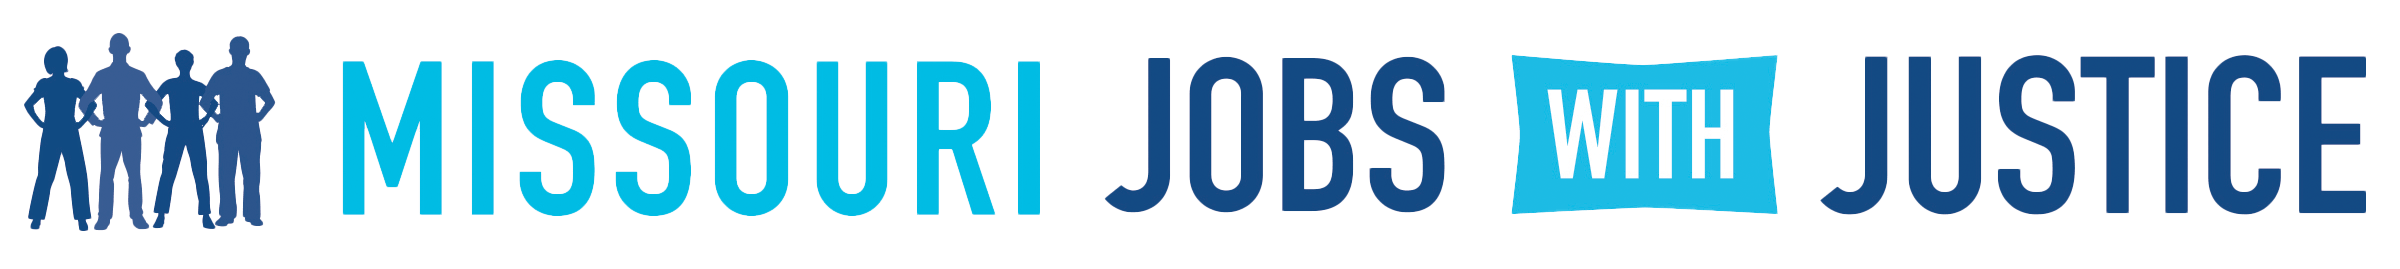 Missouri Jobs with Justice Logo